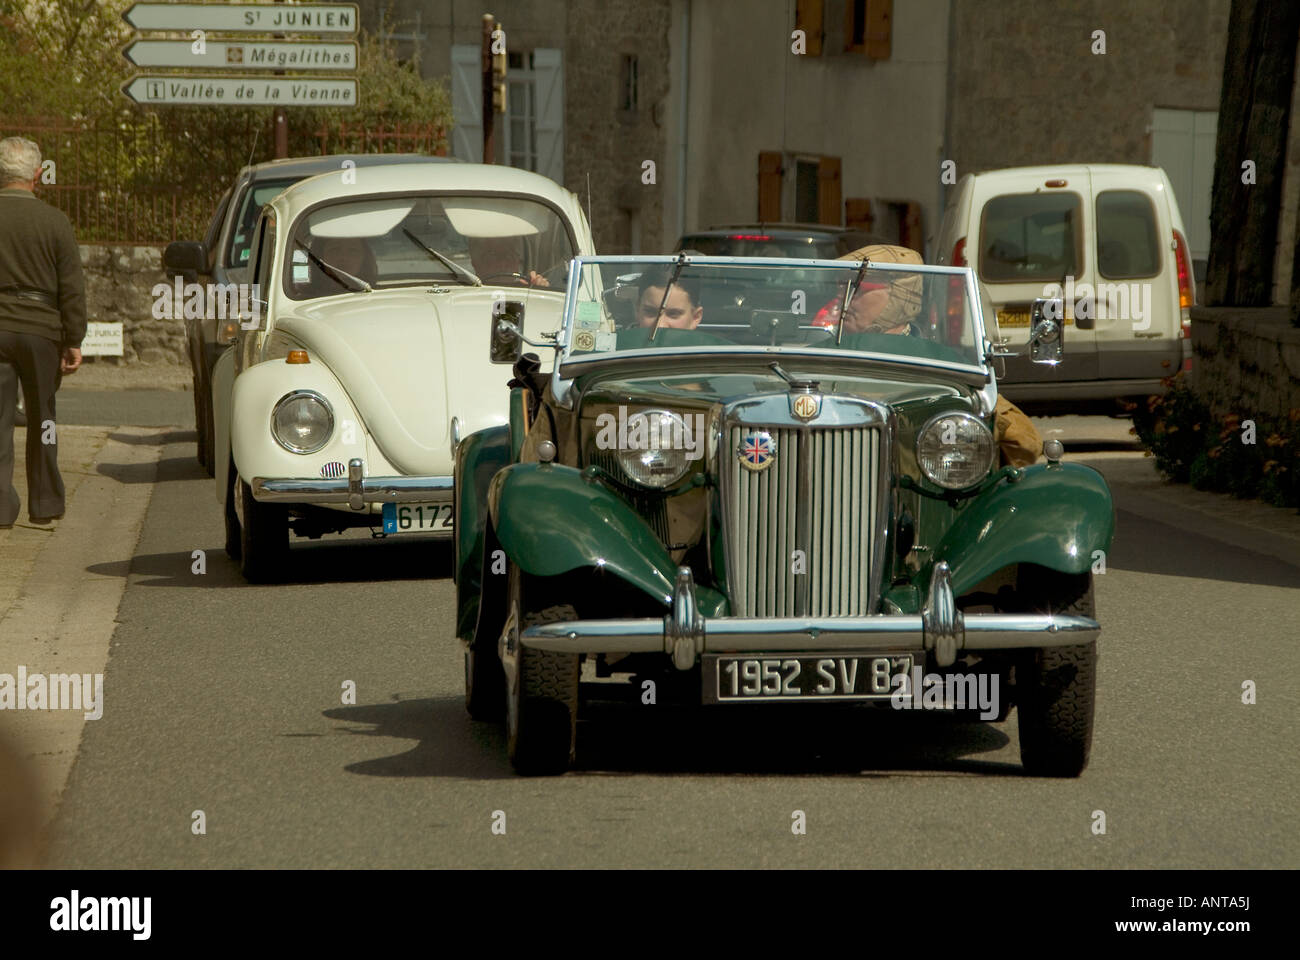 MG TF car followed by a classic VW beetle in a classic car road event in central France - Stock Image